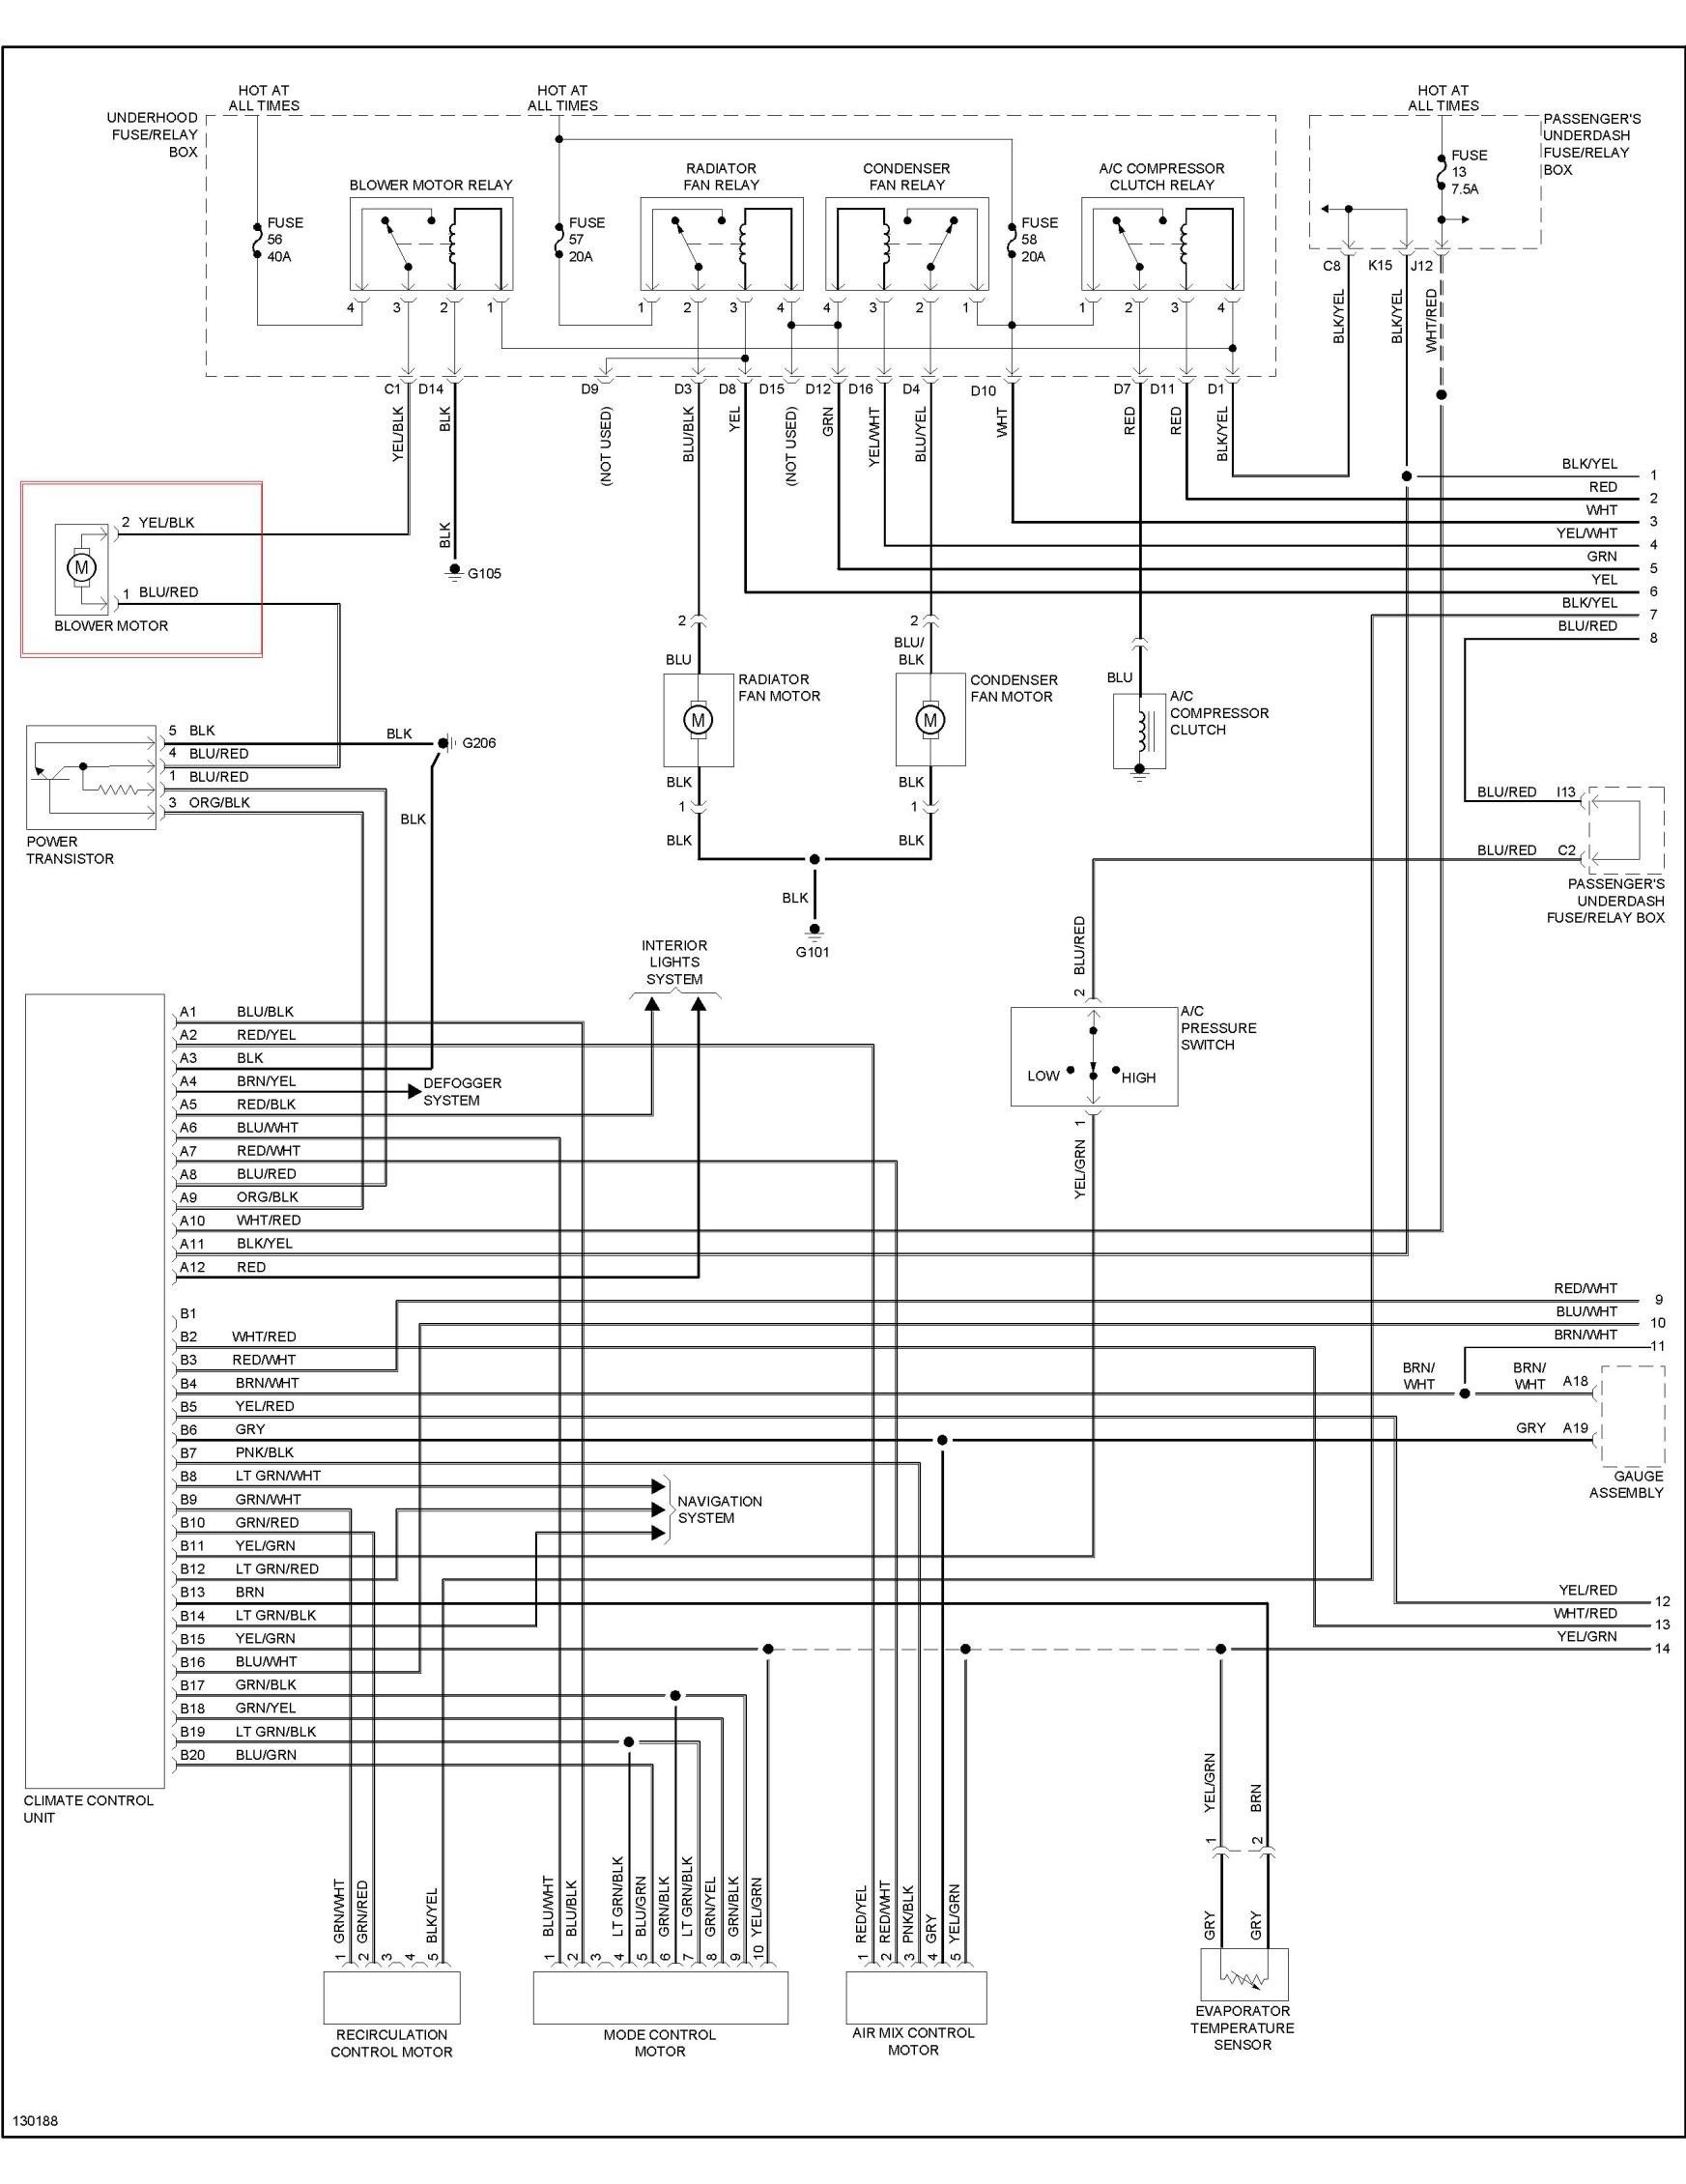 7E21 Smart Fortwo Fuse Box Diagram | Wiring ResourcesWiring Resources